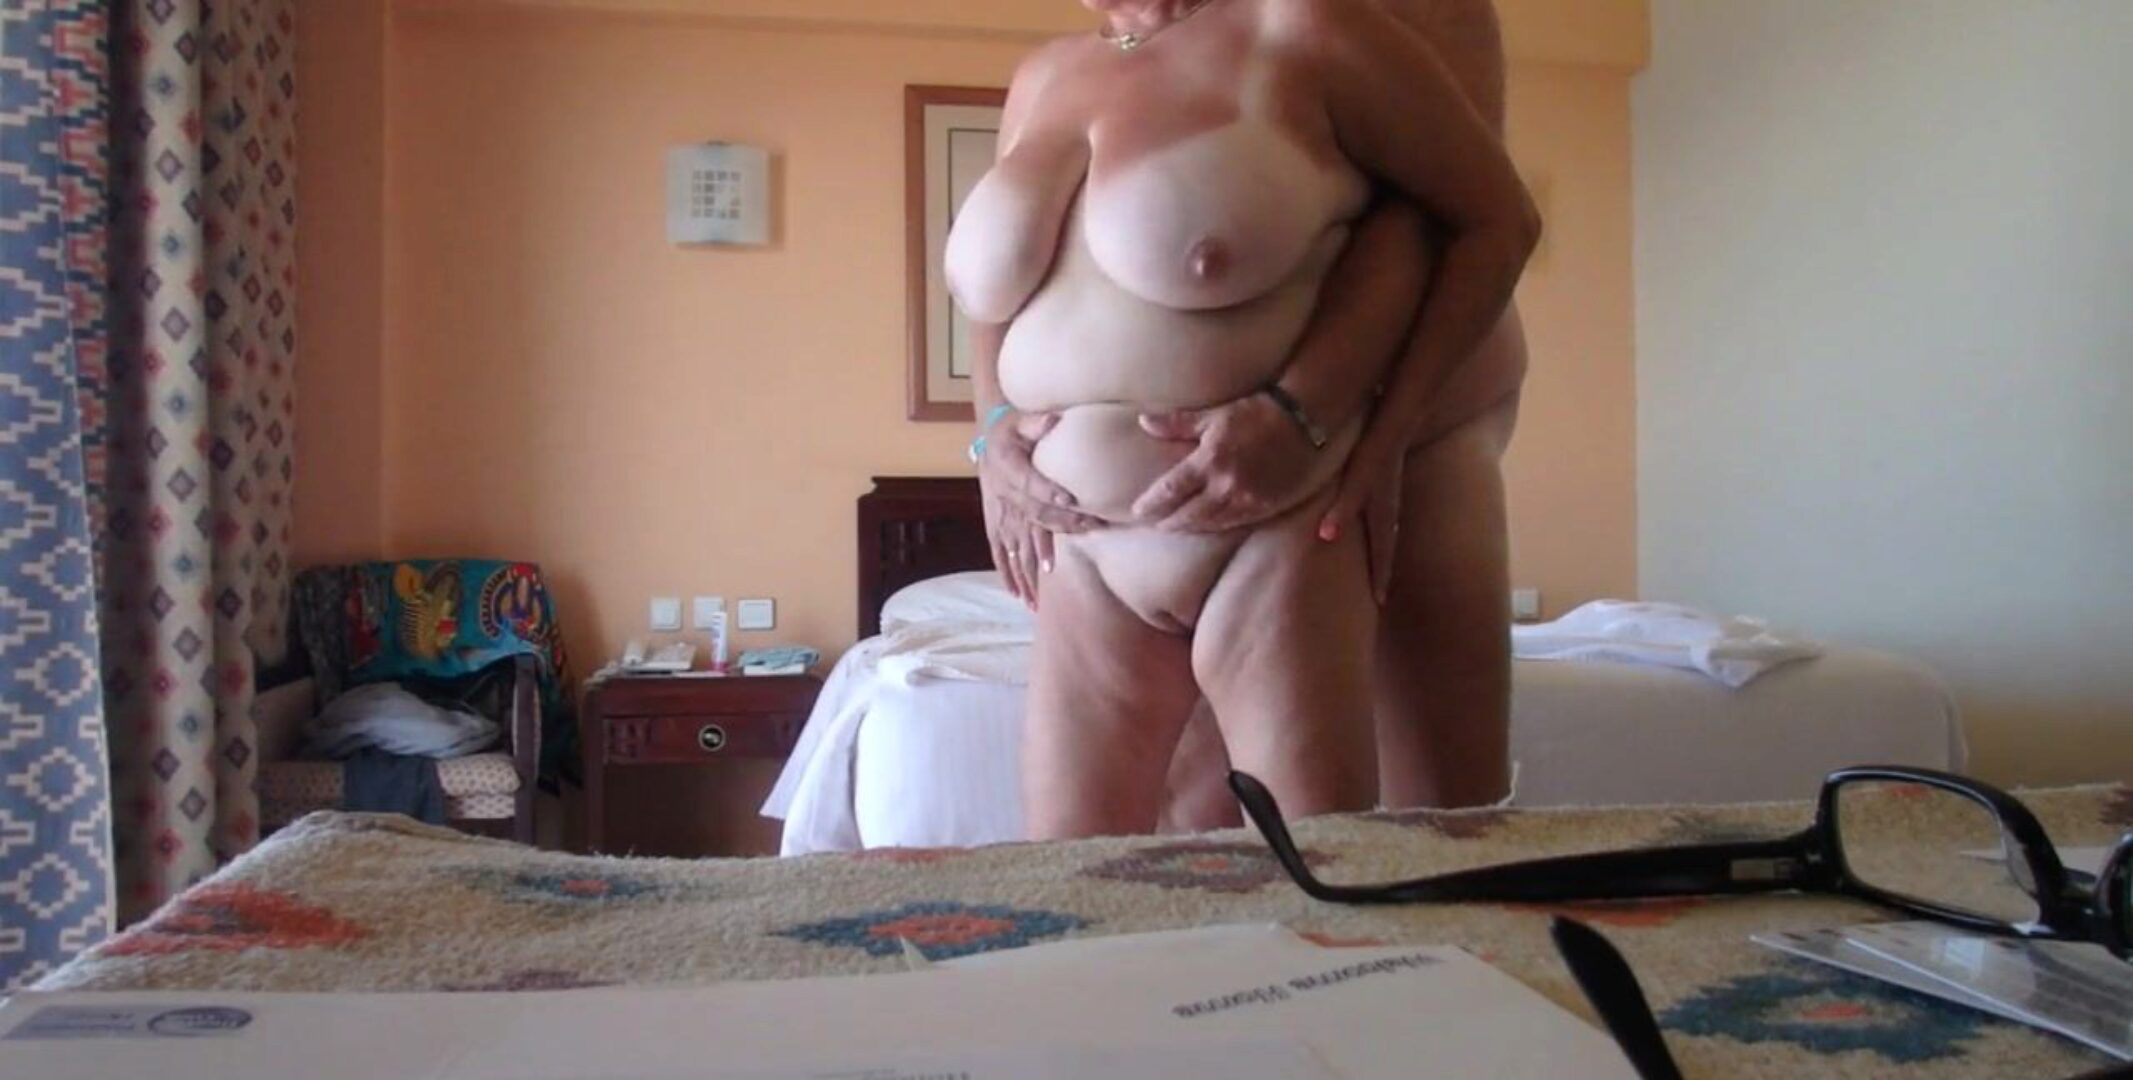 German Mature Amateur Pirn Hub